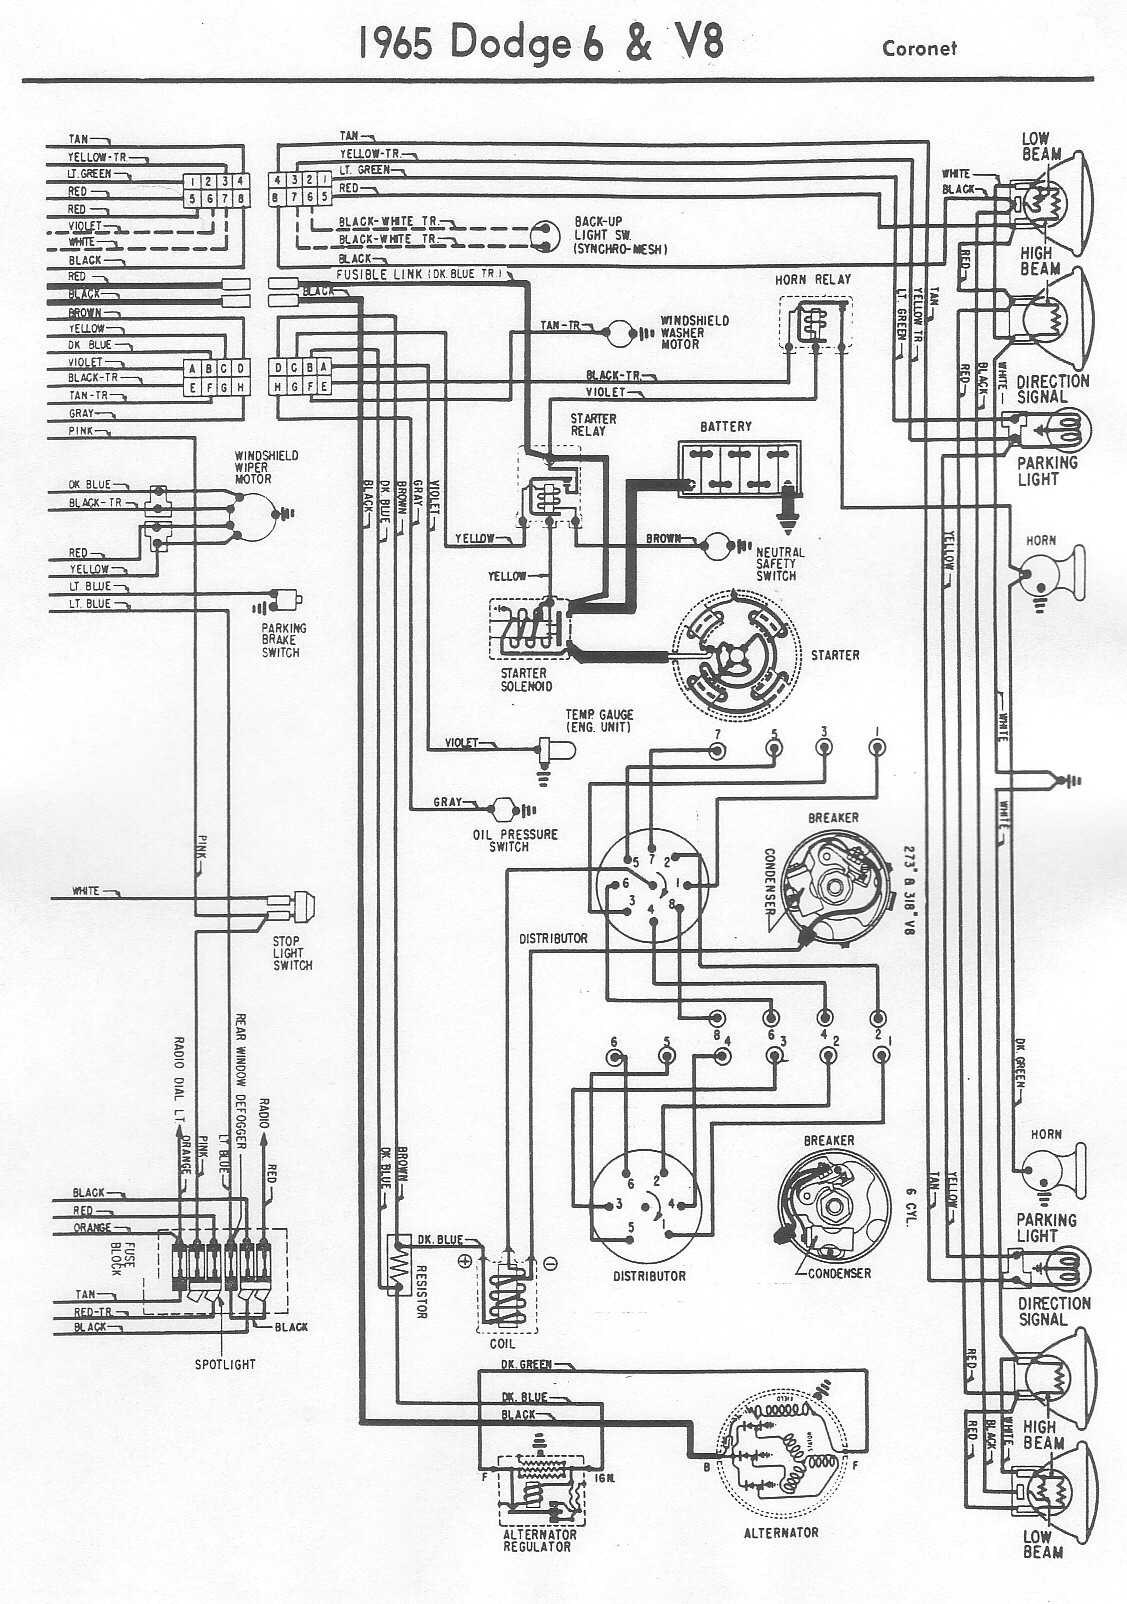 small resolution of 1966 dodge d 300 wiring diagram wiring diagram portal 1966 dodge charger wiring diagram 1963 chrysler